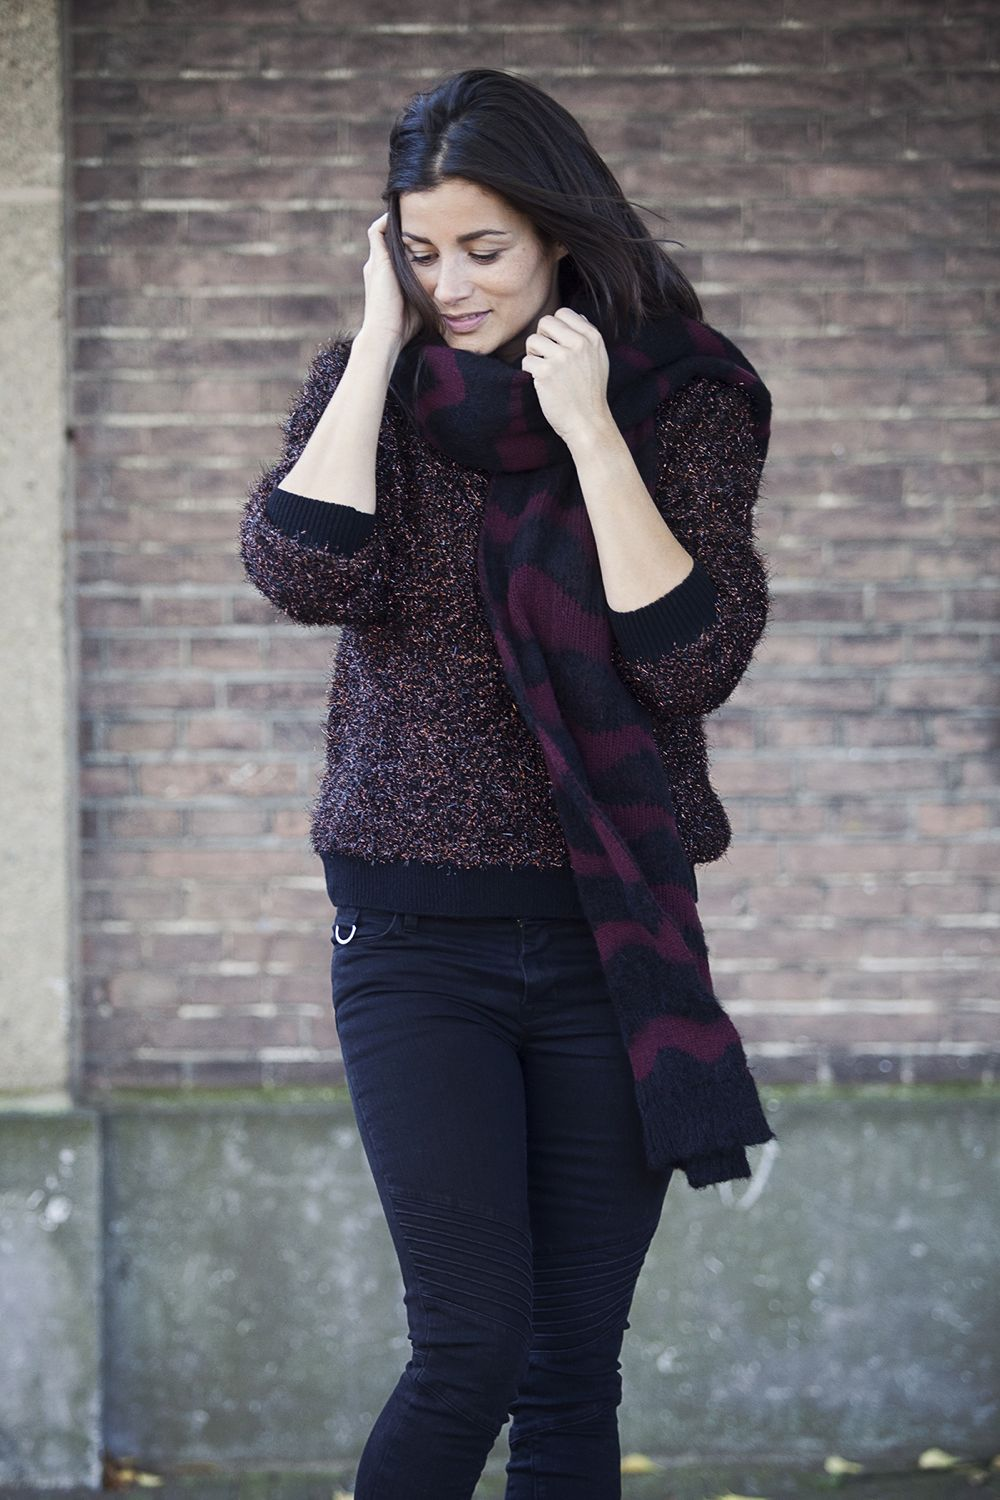 Streetstyle fall winter 2014 lurex knits JBrand